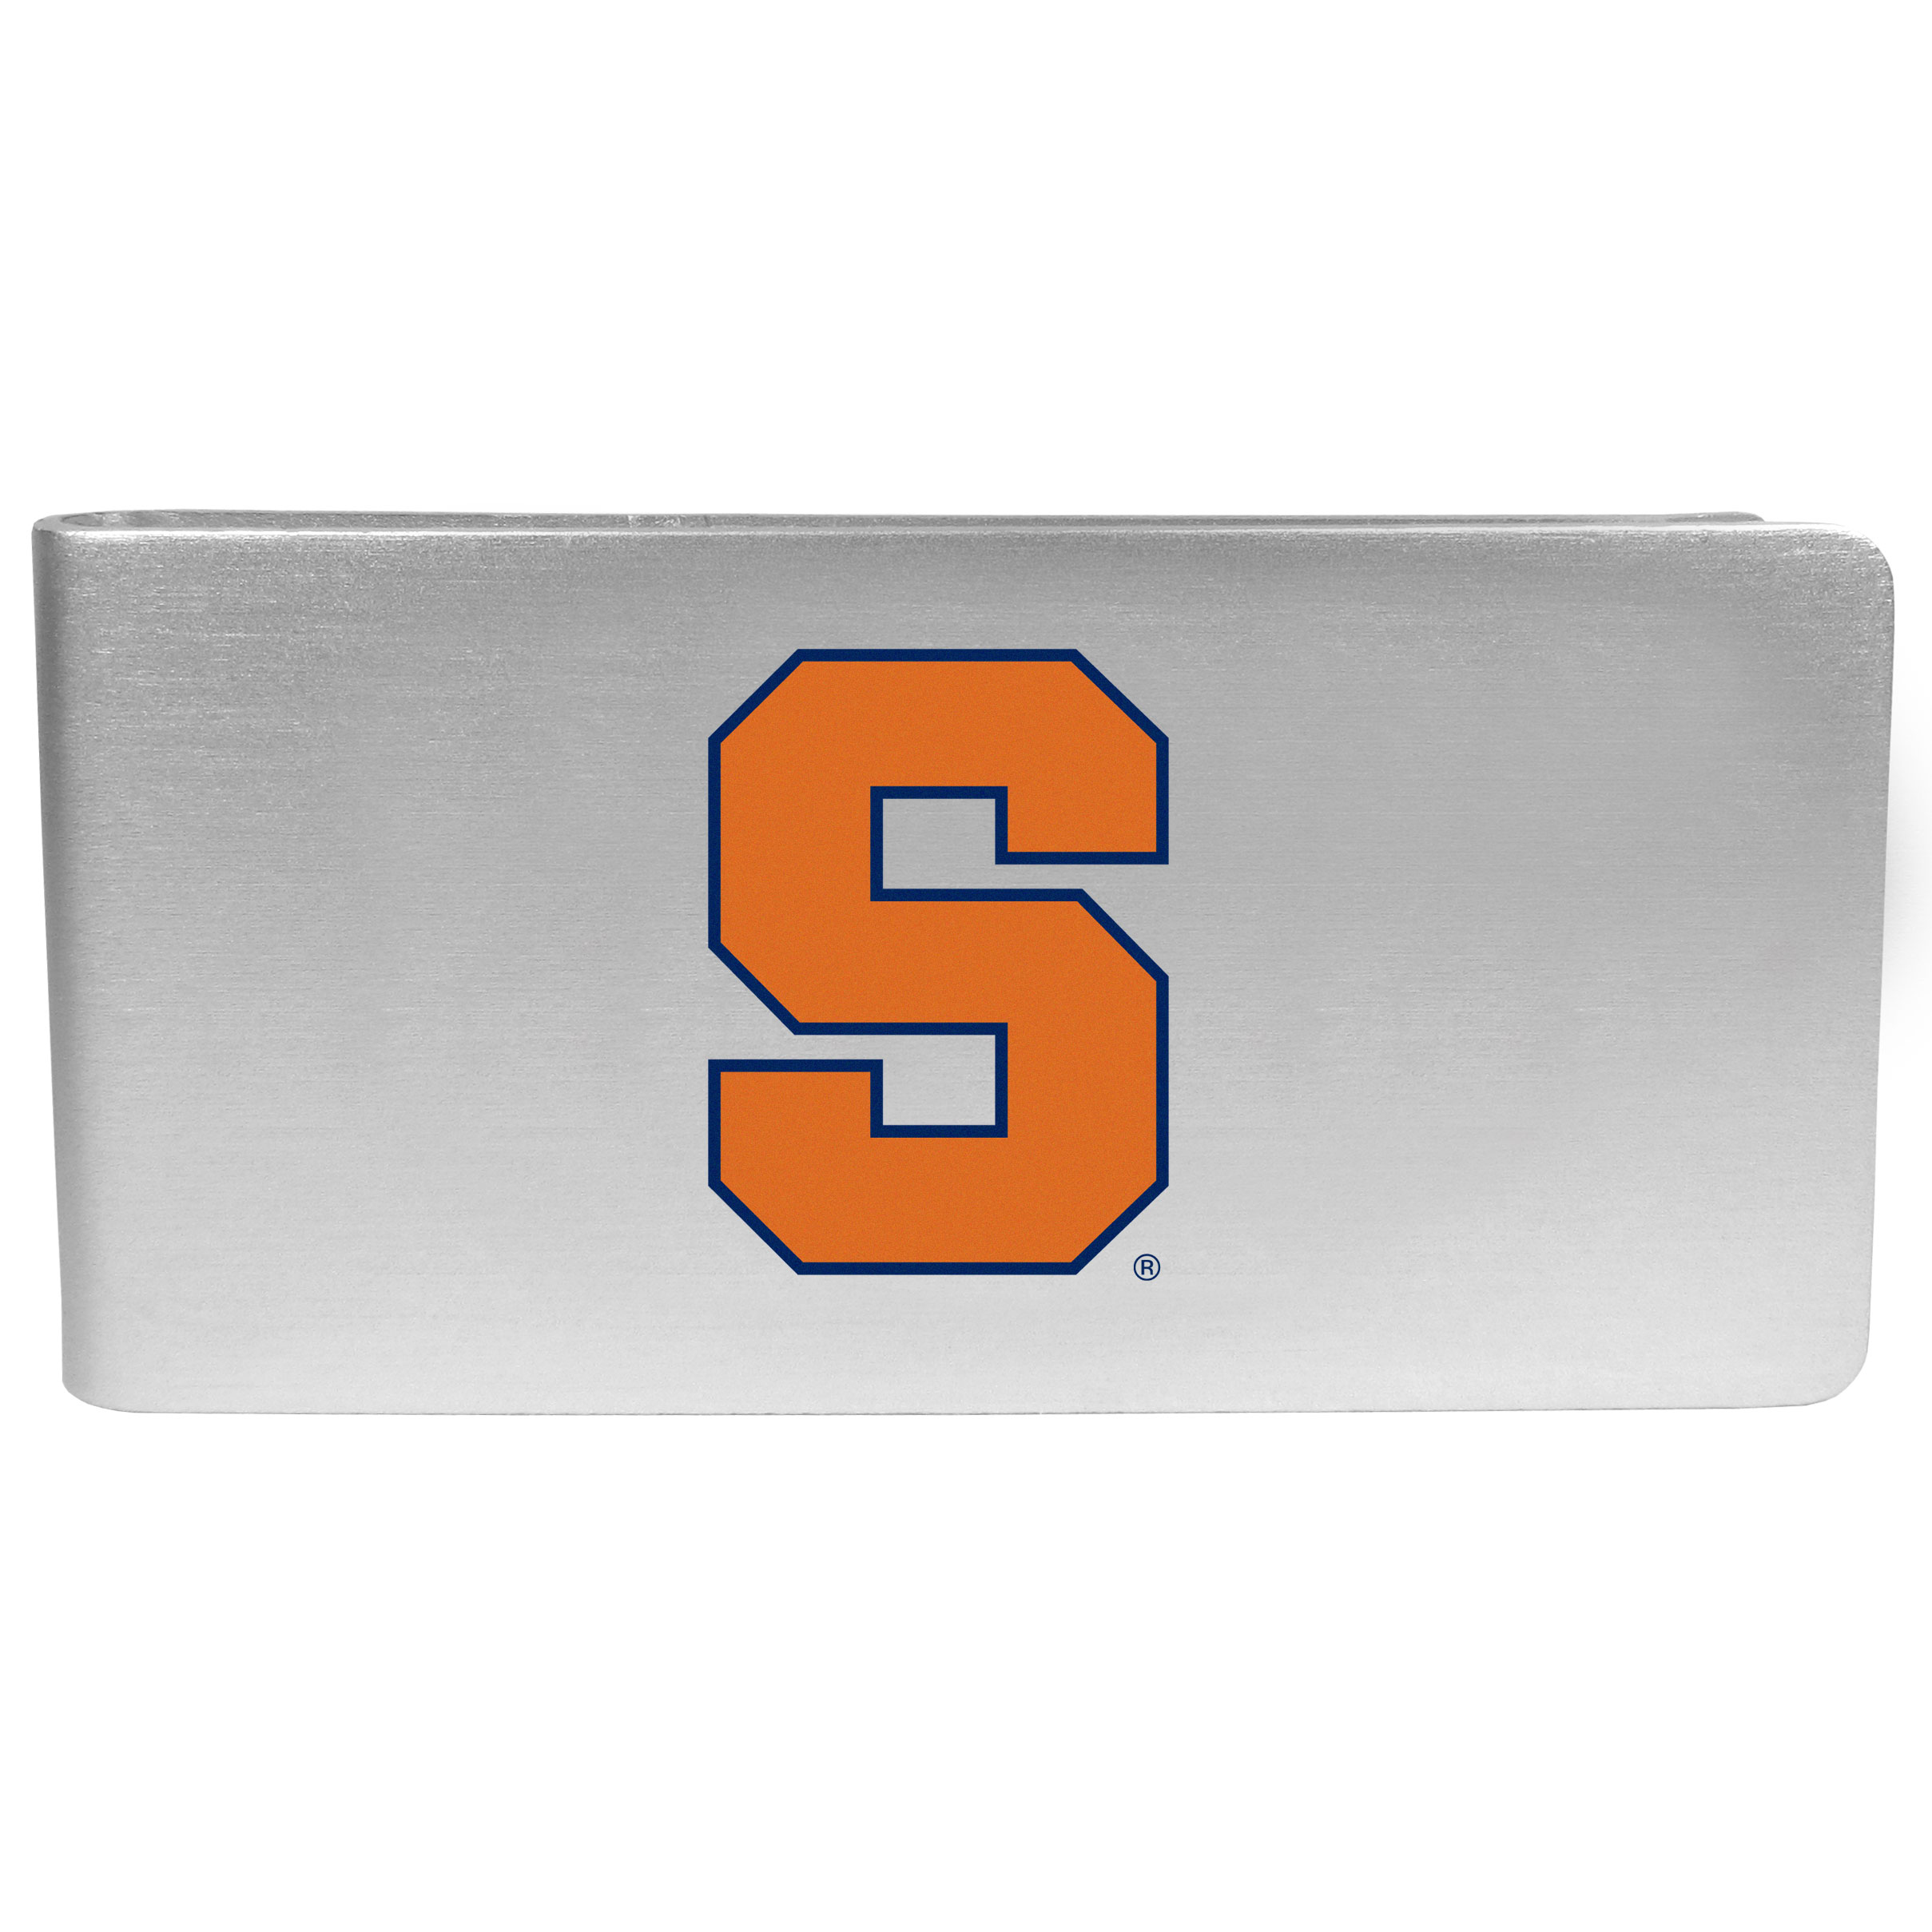 Syracuse Orange Logo Money Clip - Our brushed metal money clip has classic style and functionality. The attractive clip features the Syracuse Orange logo expertly printed on front.